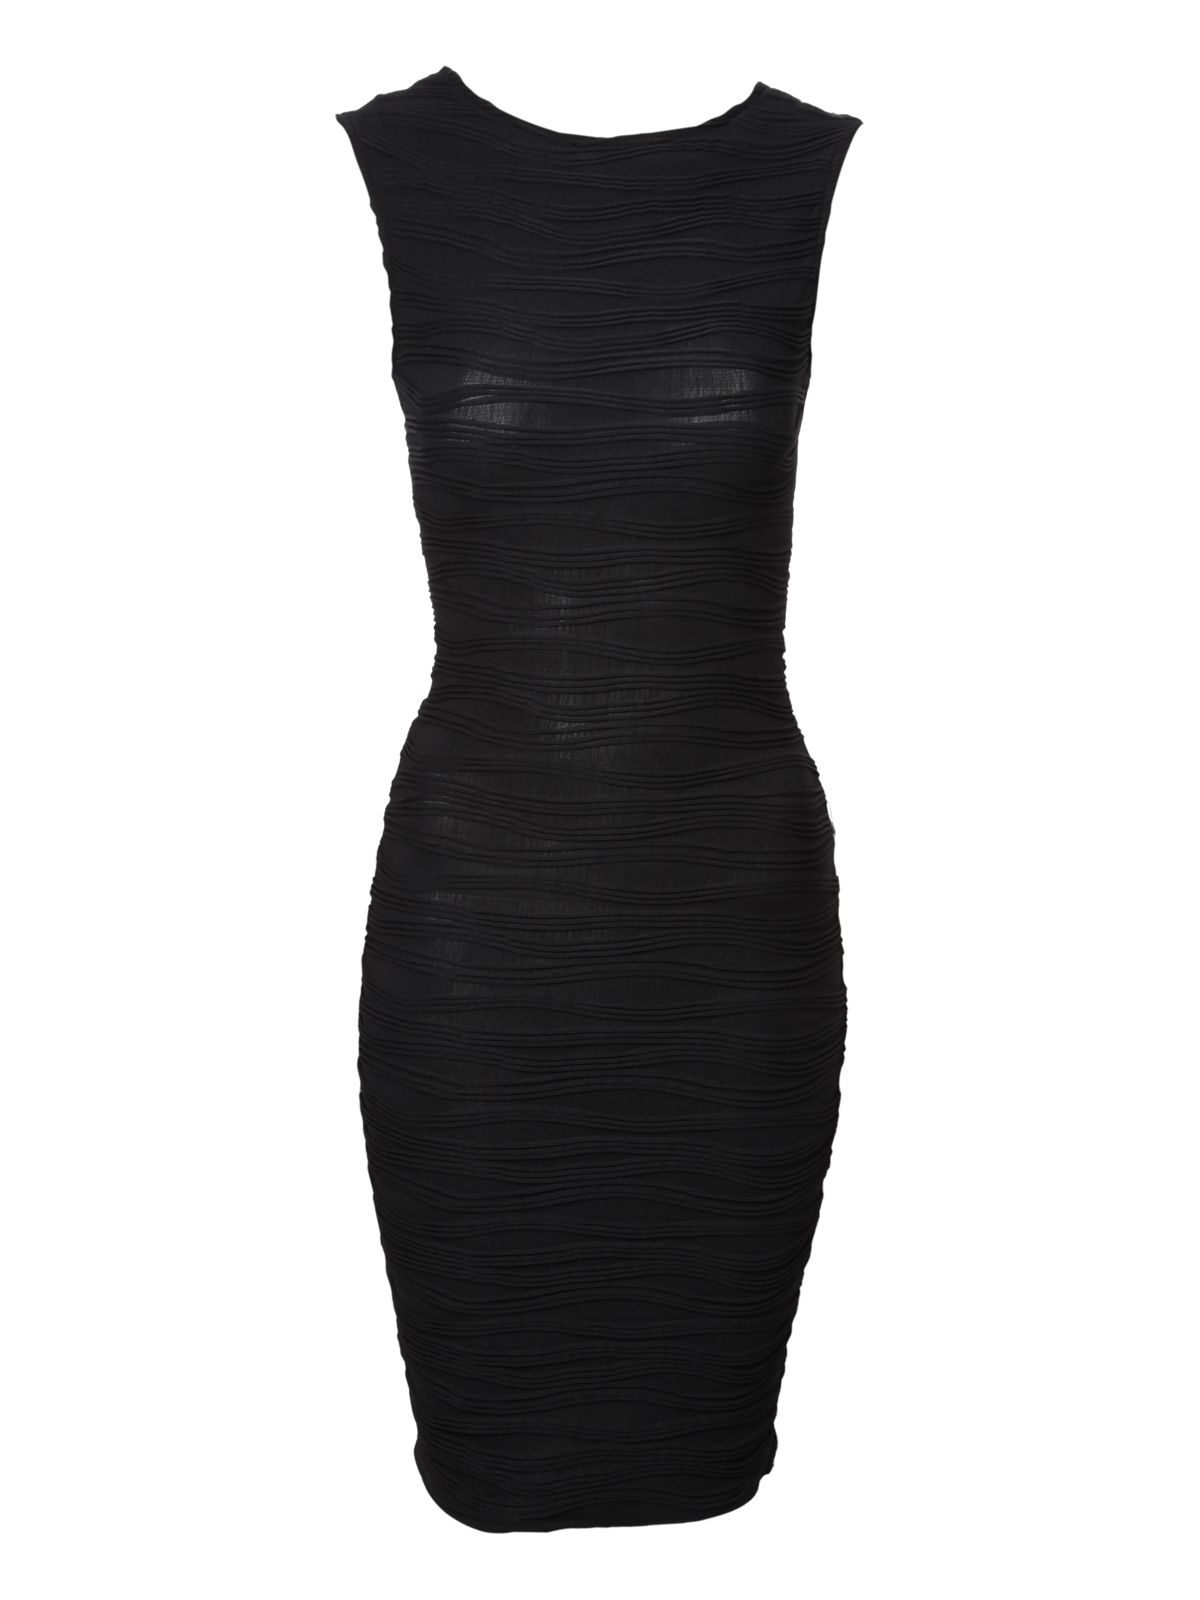 Ripple wave bodycon dress